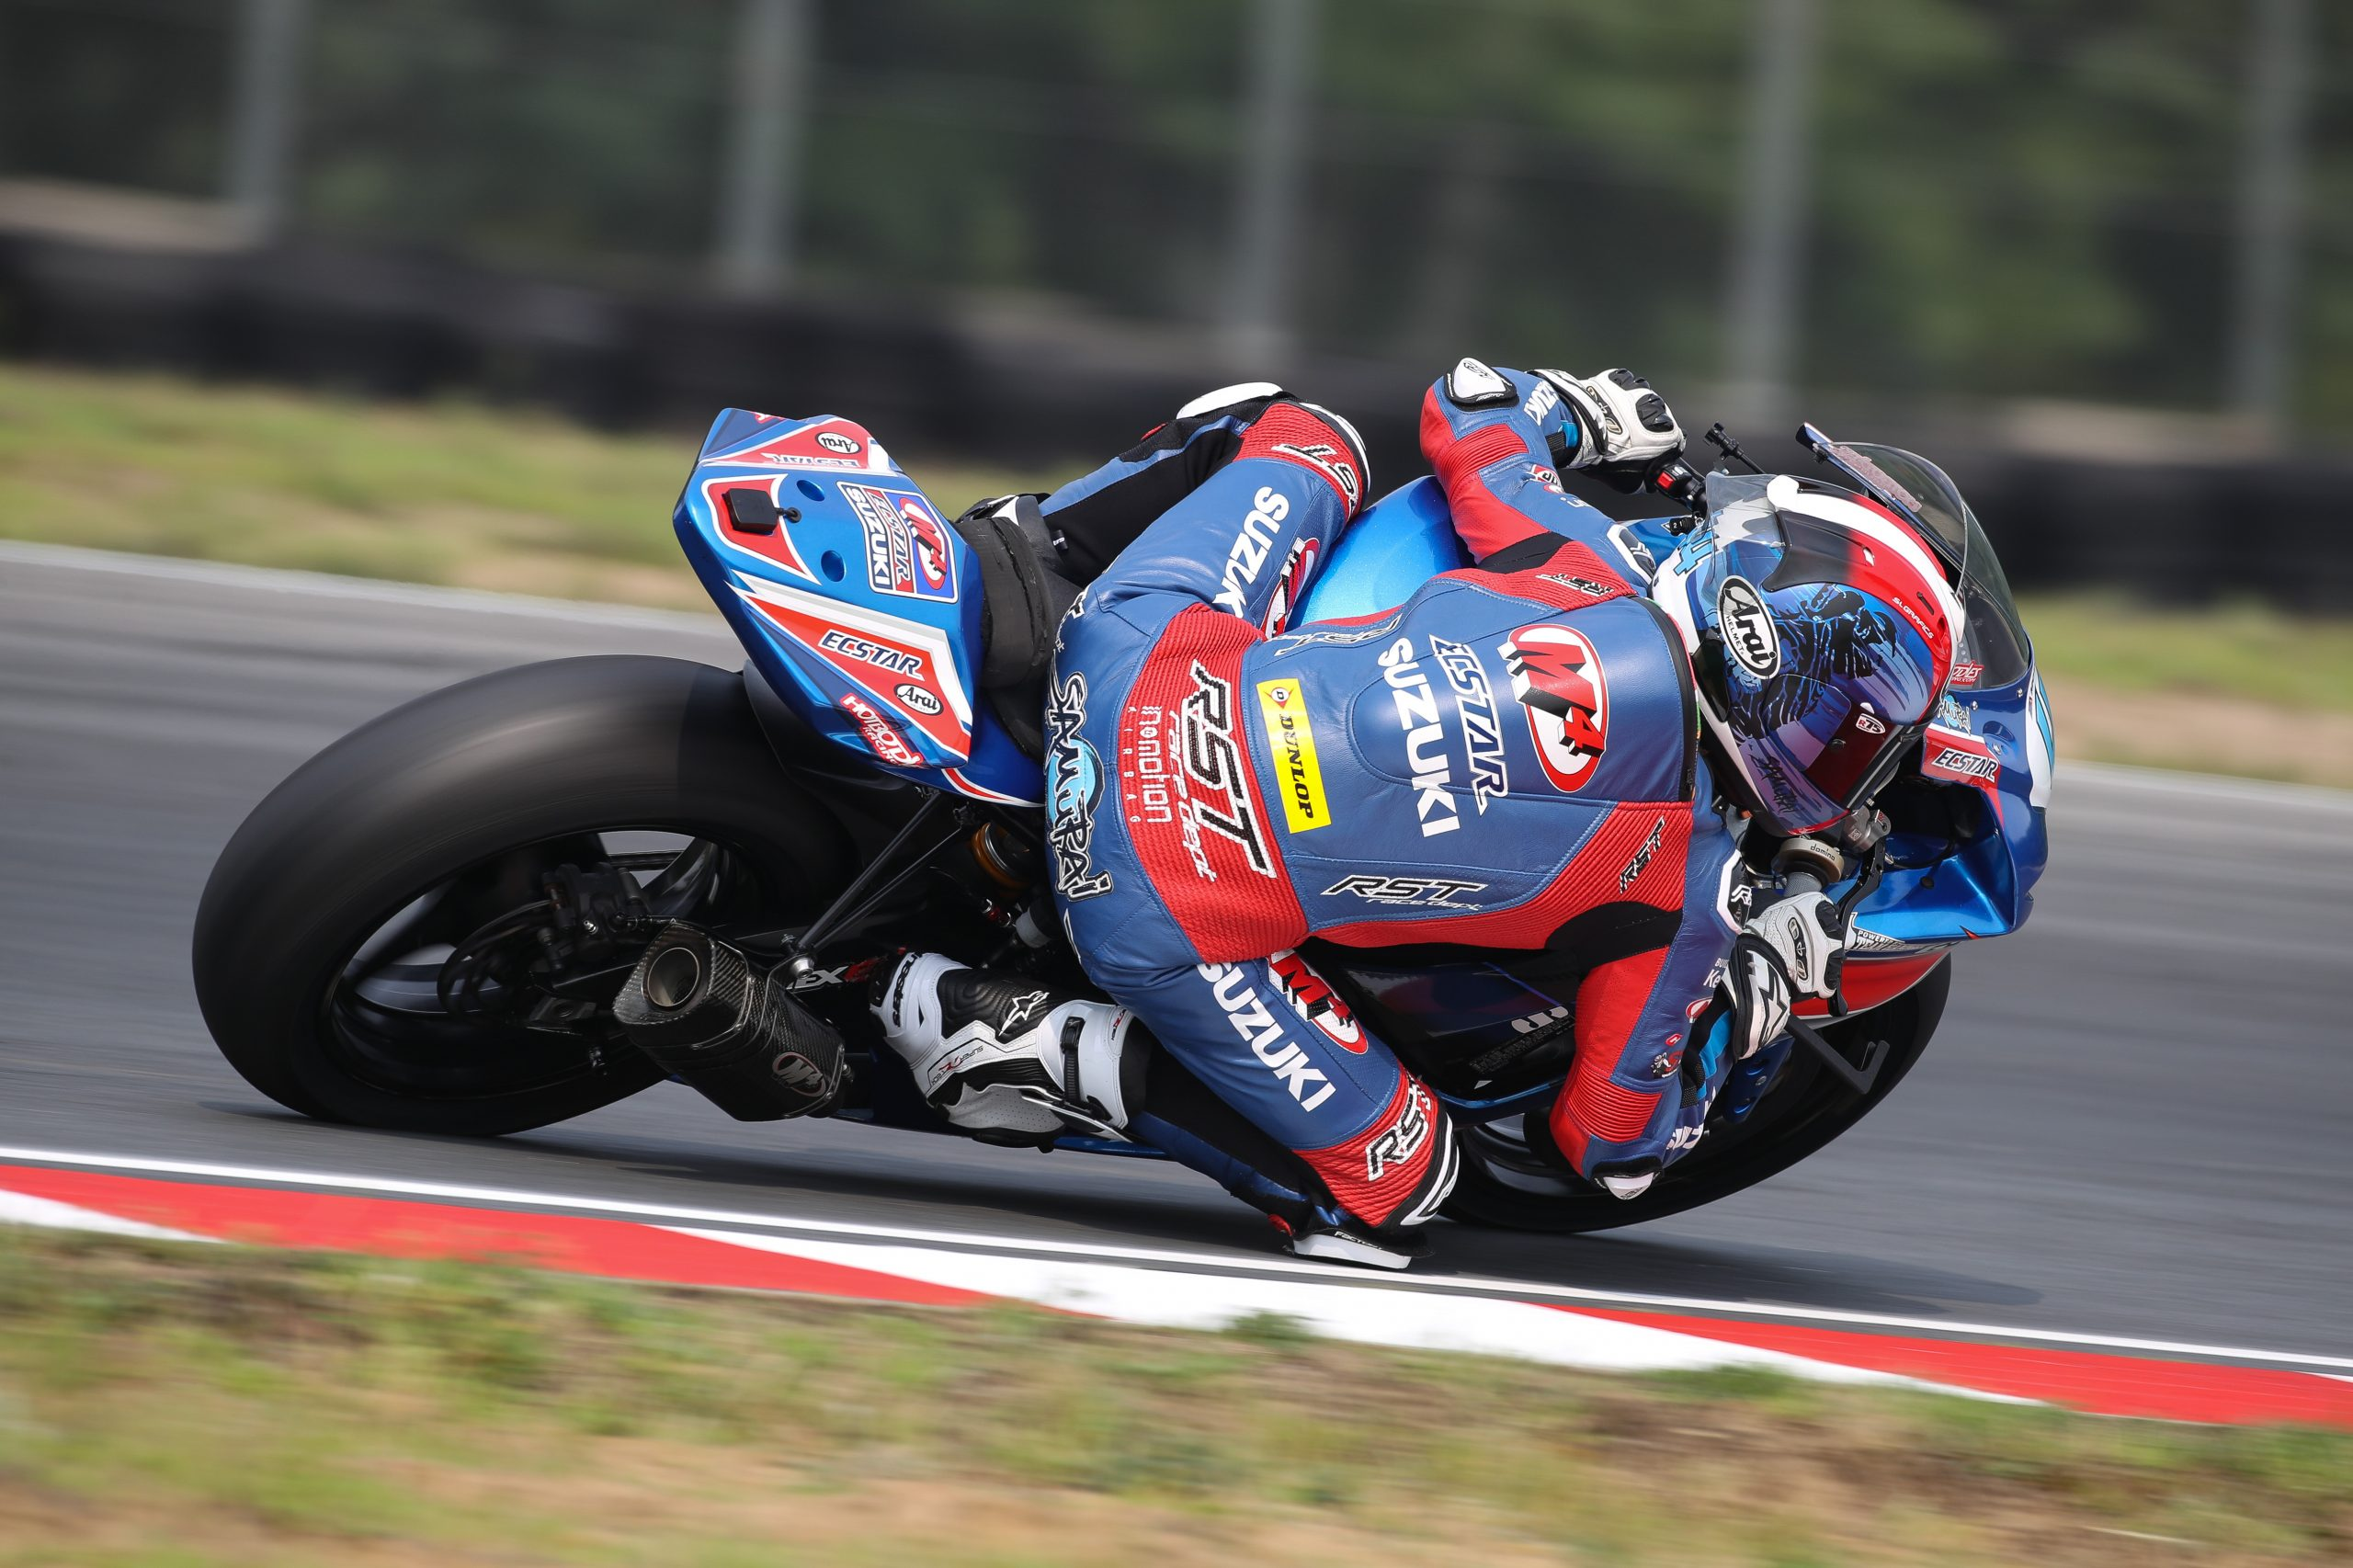 210802 Sam Lochoff (44) continues to improve quickly and scored two podium finishes on his GSX-R600